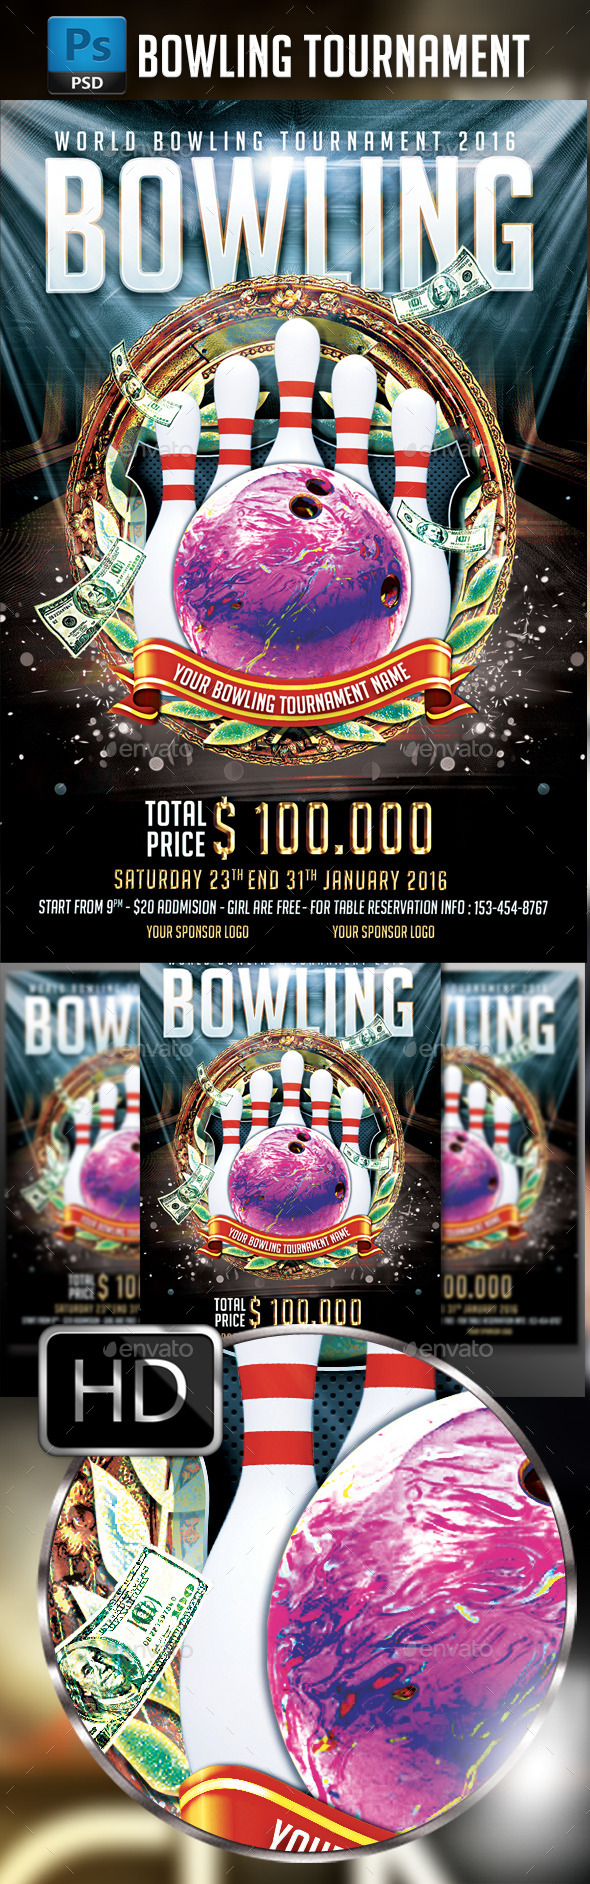 Bowling Flyer Template | Bowling Tournament Flyer Template By Madededuk Graphicriver